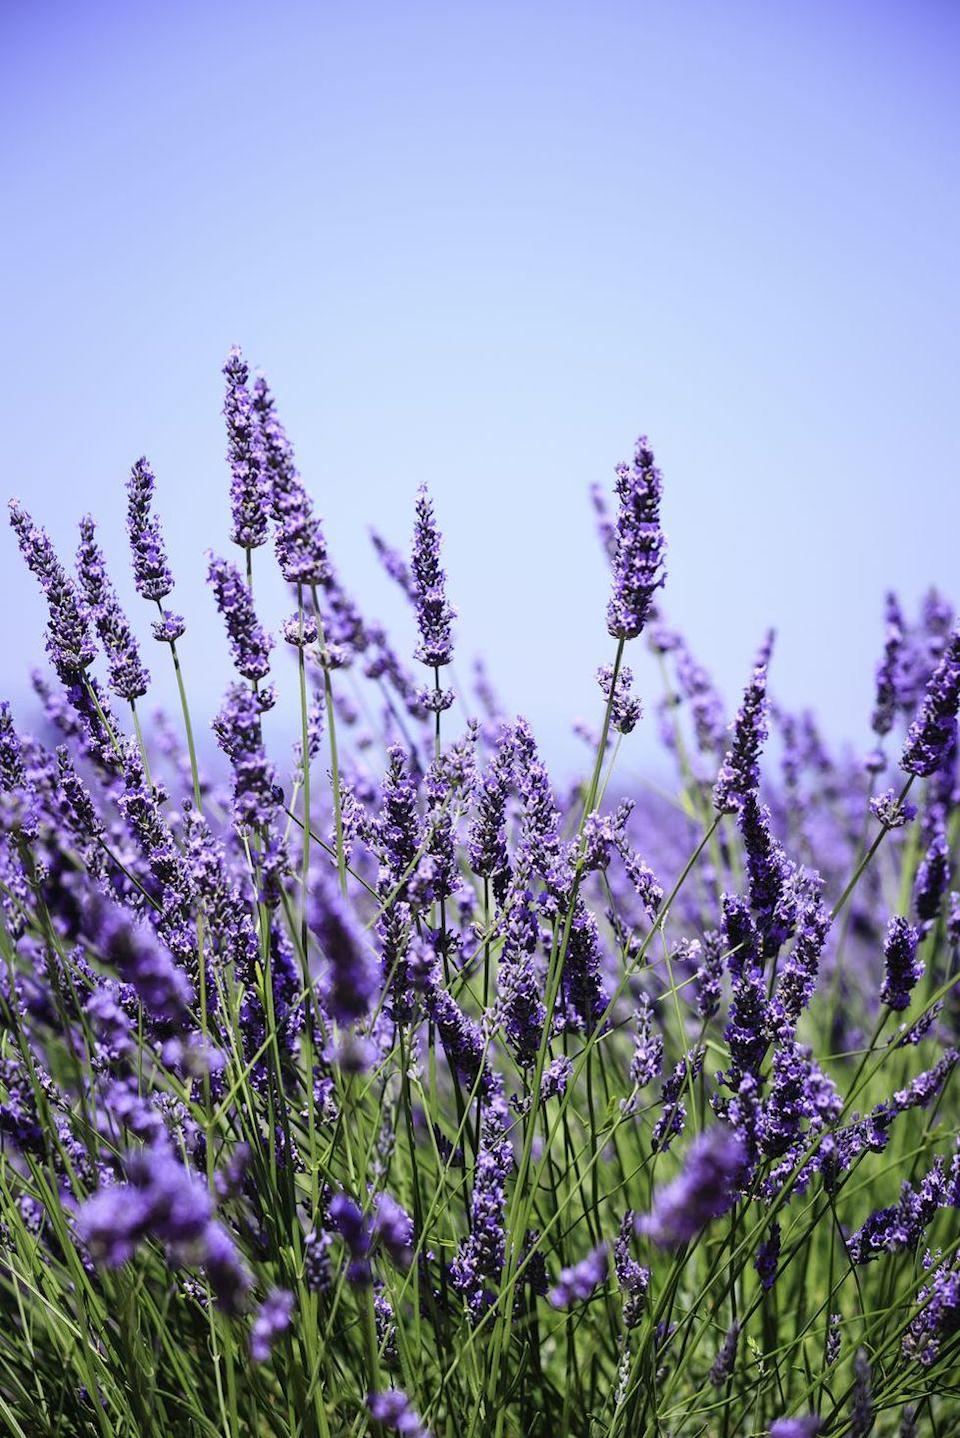 "<p>From their wonderful scent to their beautiful purple hue, a bouquet of lavender is a message of devotion. It also has calming aromatherapy properties, so a bouquet of lavender may make an excellent gift for a student or anyone in your life who needs some relaxation.</p><p><b>RELATED: </b><a href=""https://www.goodhousekeeping.com/home/gardening/a20705663/how-to-grow-lavender/"" rel=""nofollow noopener"" target=""_blank"" data-ylk=""slk:How to Grow Lavender Anywhere — Even Indoors"" class=""link rapid-noclick-resp"">How to Grow Lavender Anywhere — Even Indoors </a></p>"